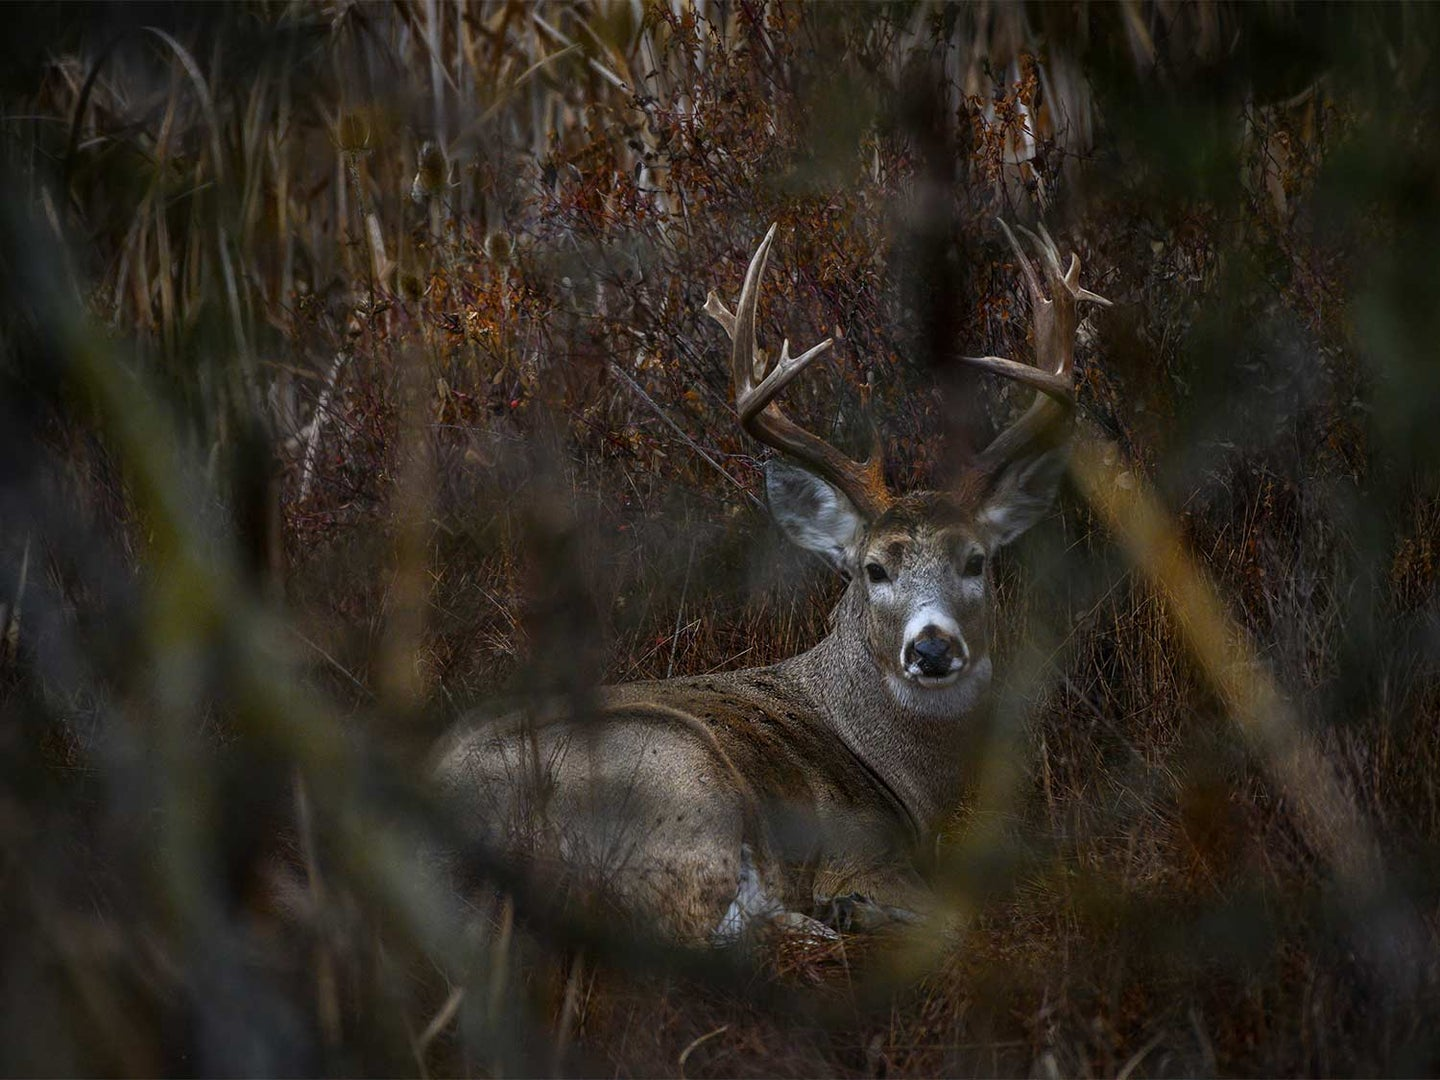 A whitetail buck stays bedded and hidden in tall grass.